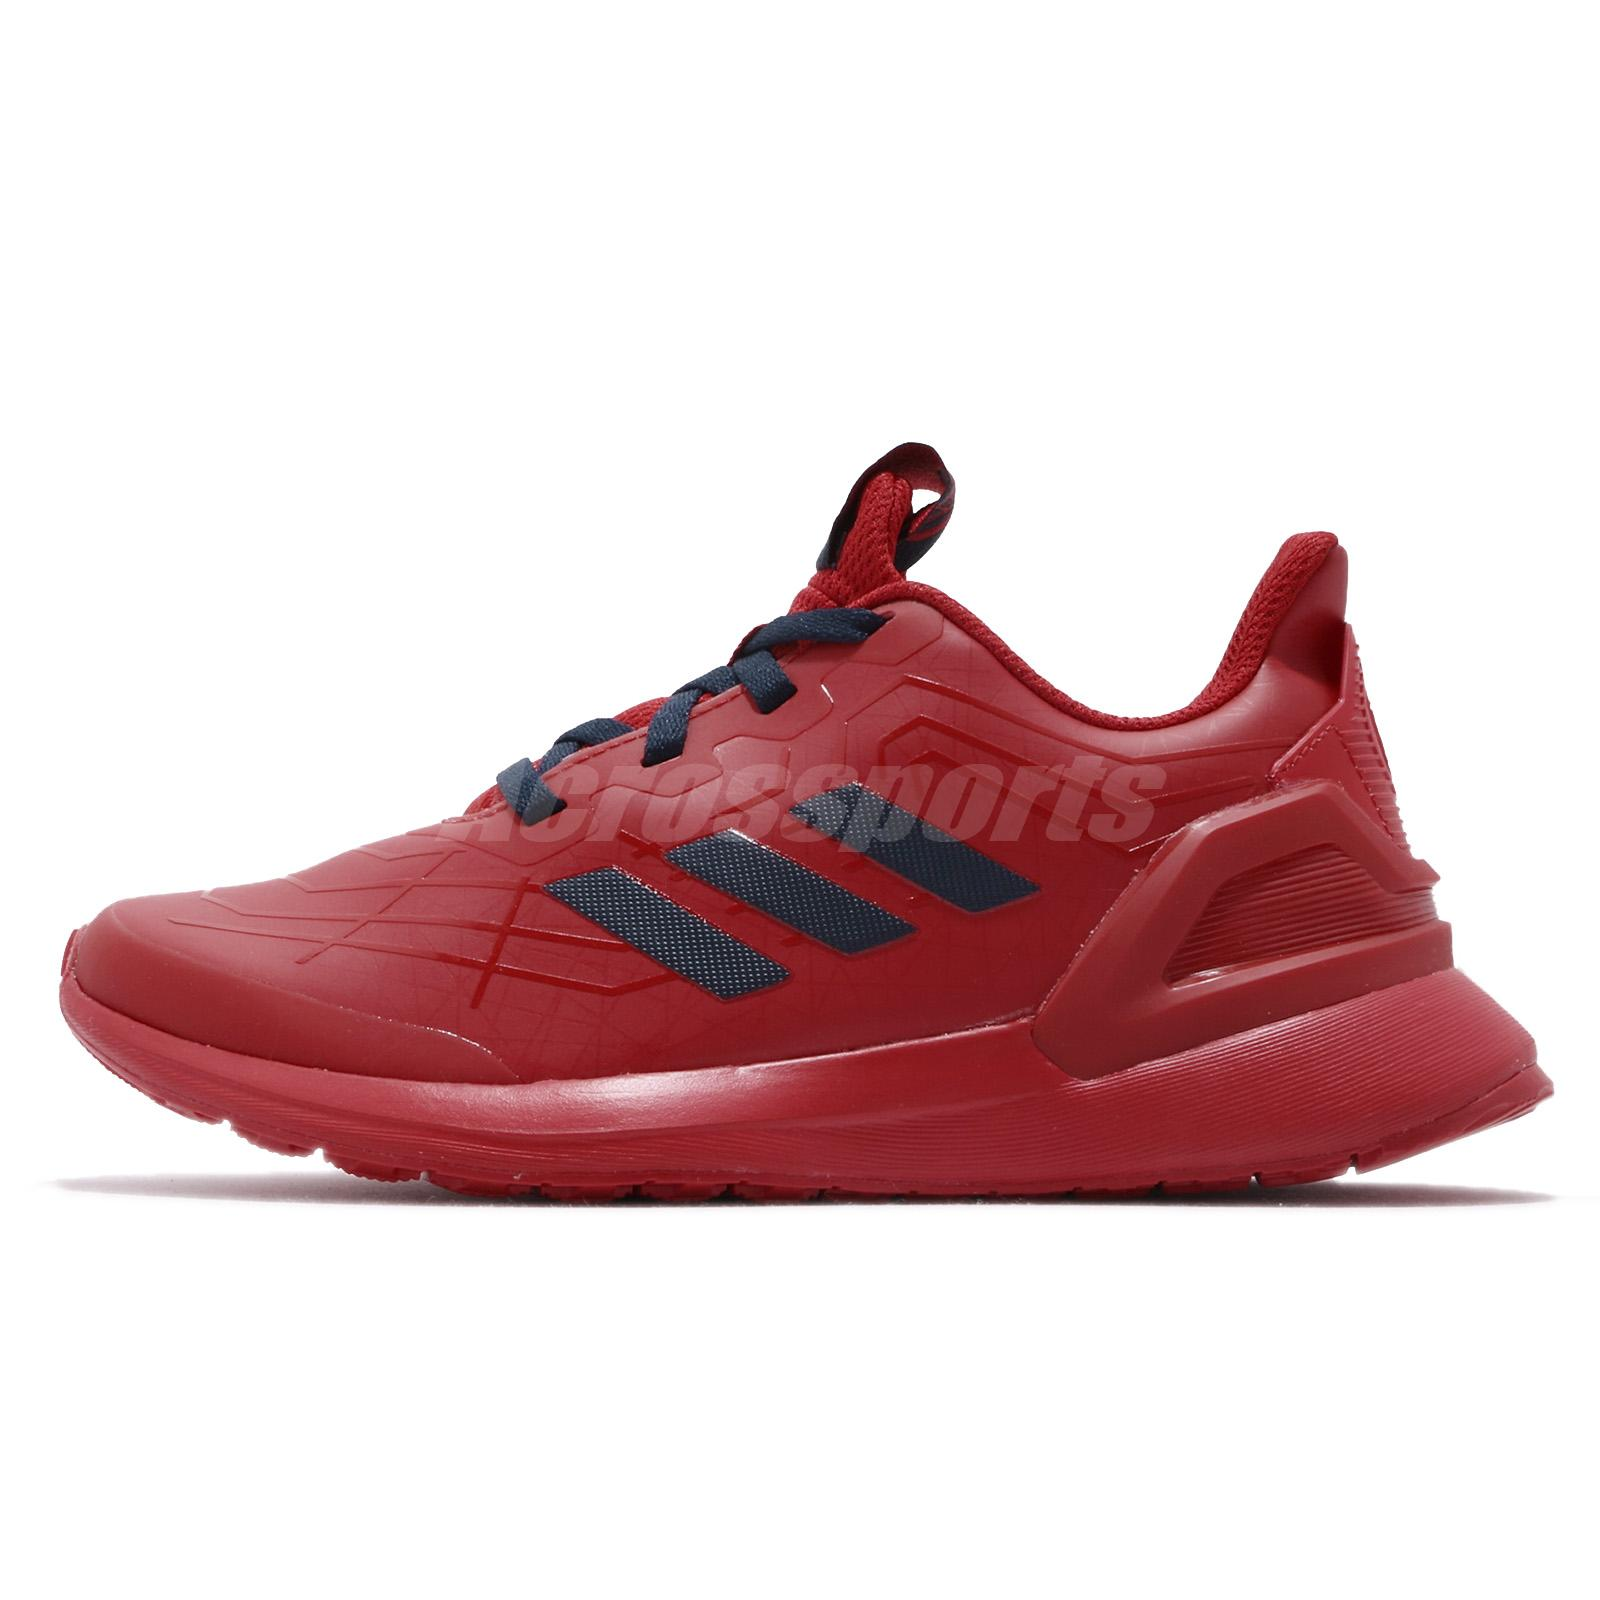 Details about adidas RapidaRun Spider Man K Marvel Scarlet Kid Preschool Shoes Sneakers G27557